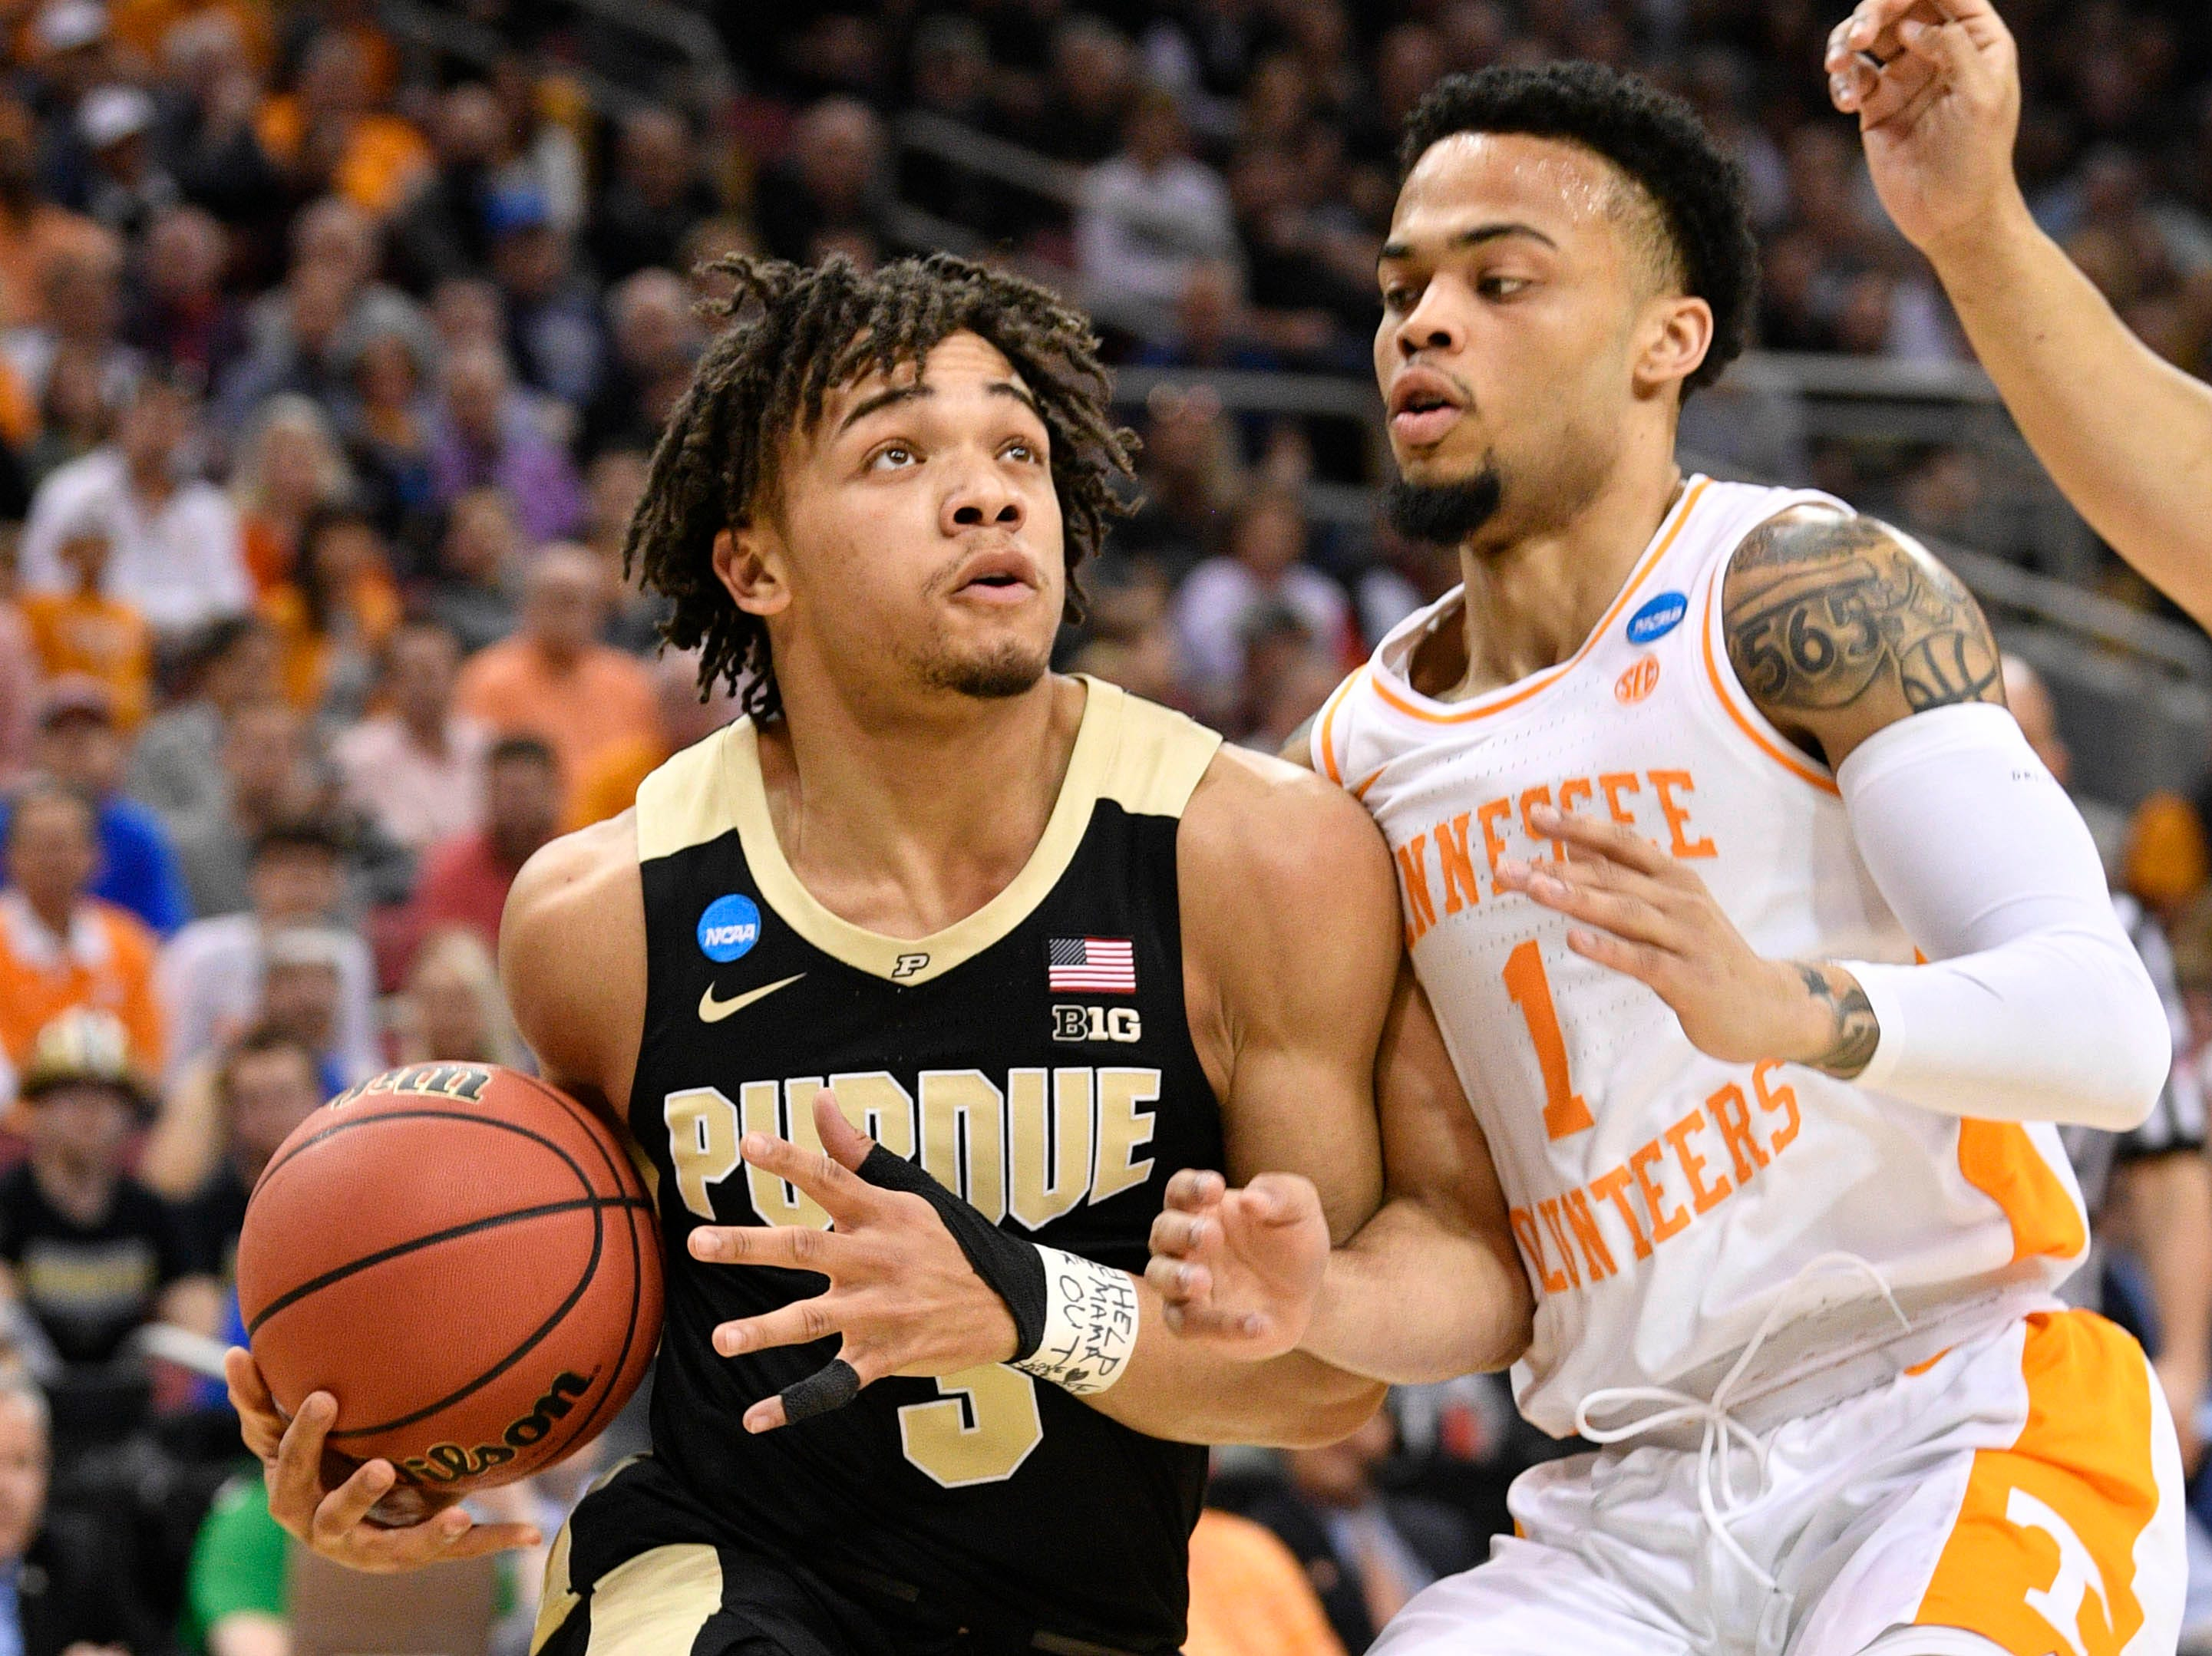 Mar 28, 2019; Louisville, KY, United States; Purdue Boilermakers guard Carsen Edwards (3) drives to the basket as Tennessee Volunteers guard Lamonte Turner (1) defends during the first half in the semifinals of the south regional of the 2019 NCAA Tournament at KFC Yum Center. Mandatory Credit: Jamie Rhodes-USA TODAY Sports